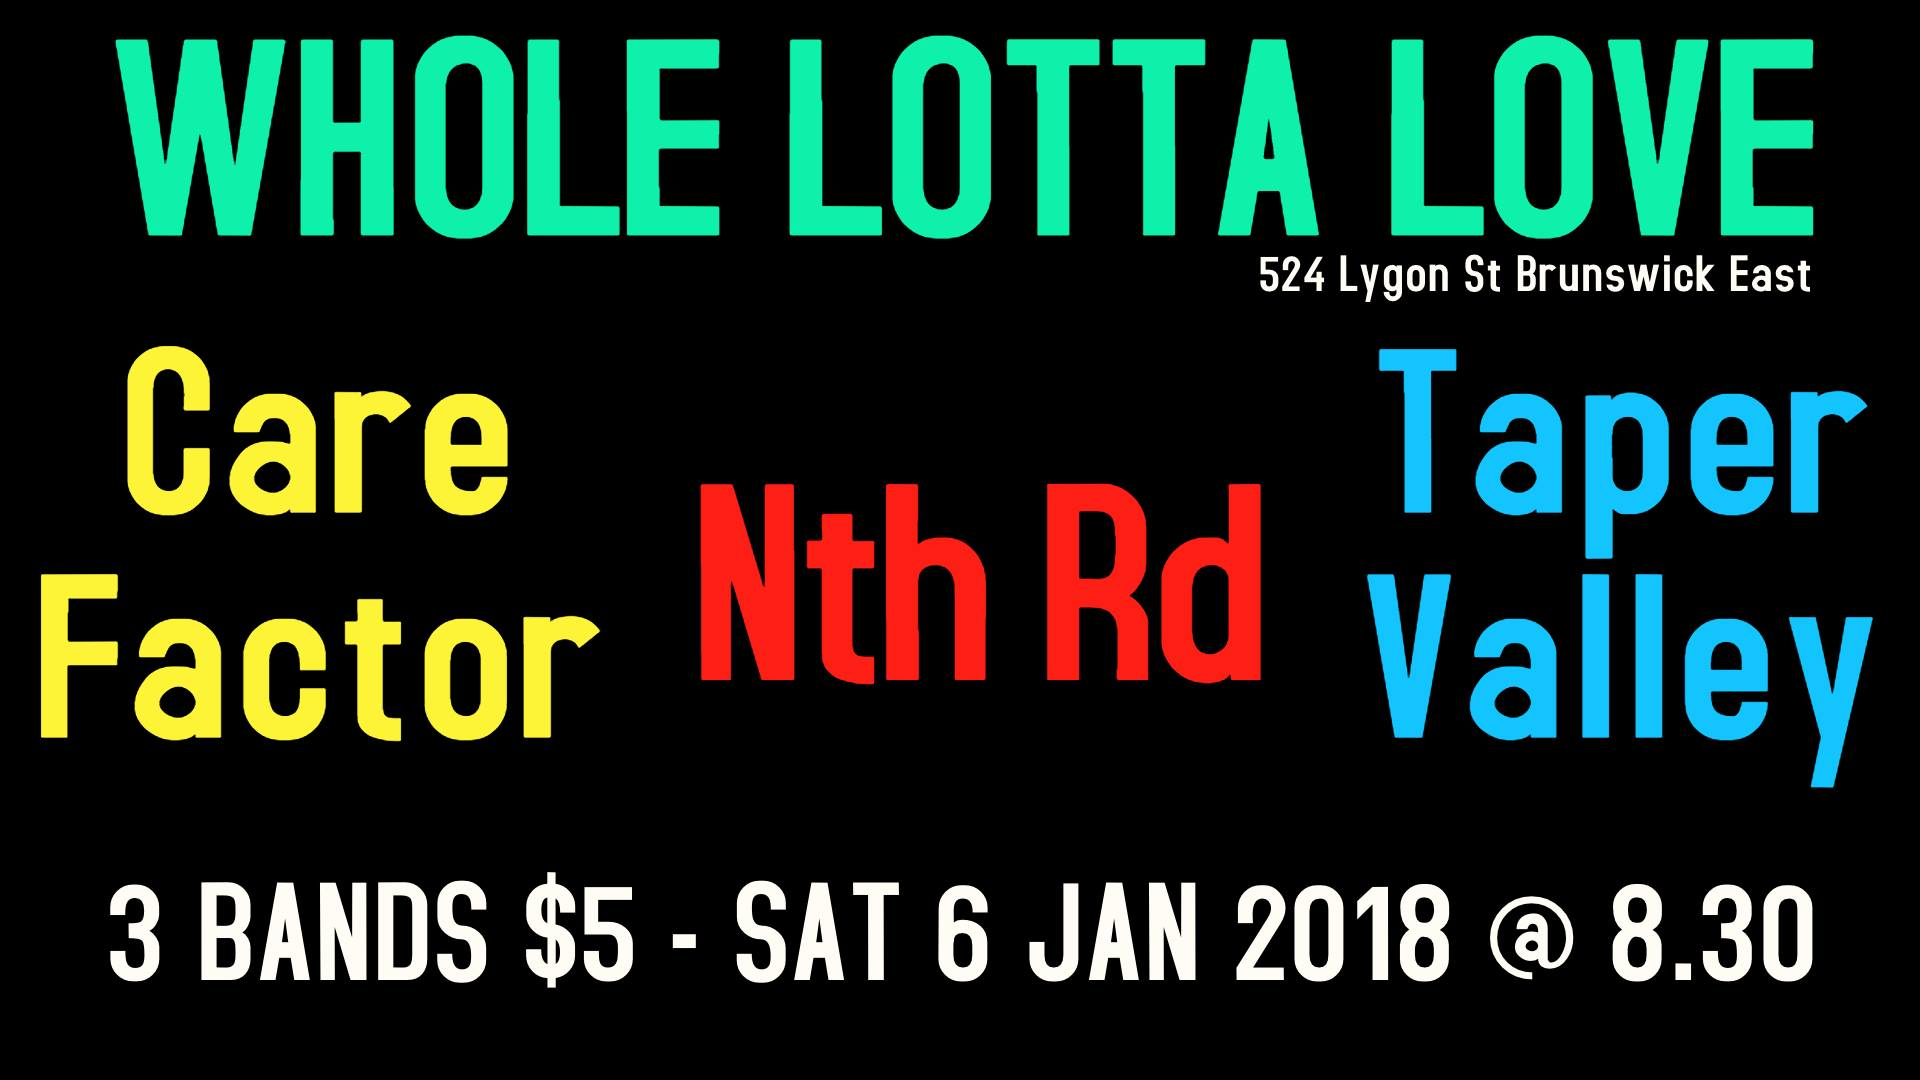 Nth Rd band Whole Lotta Love Brunswick Taper Valley Care Factor